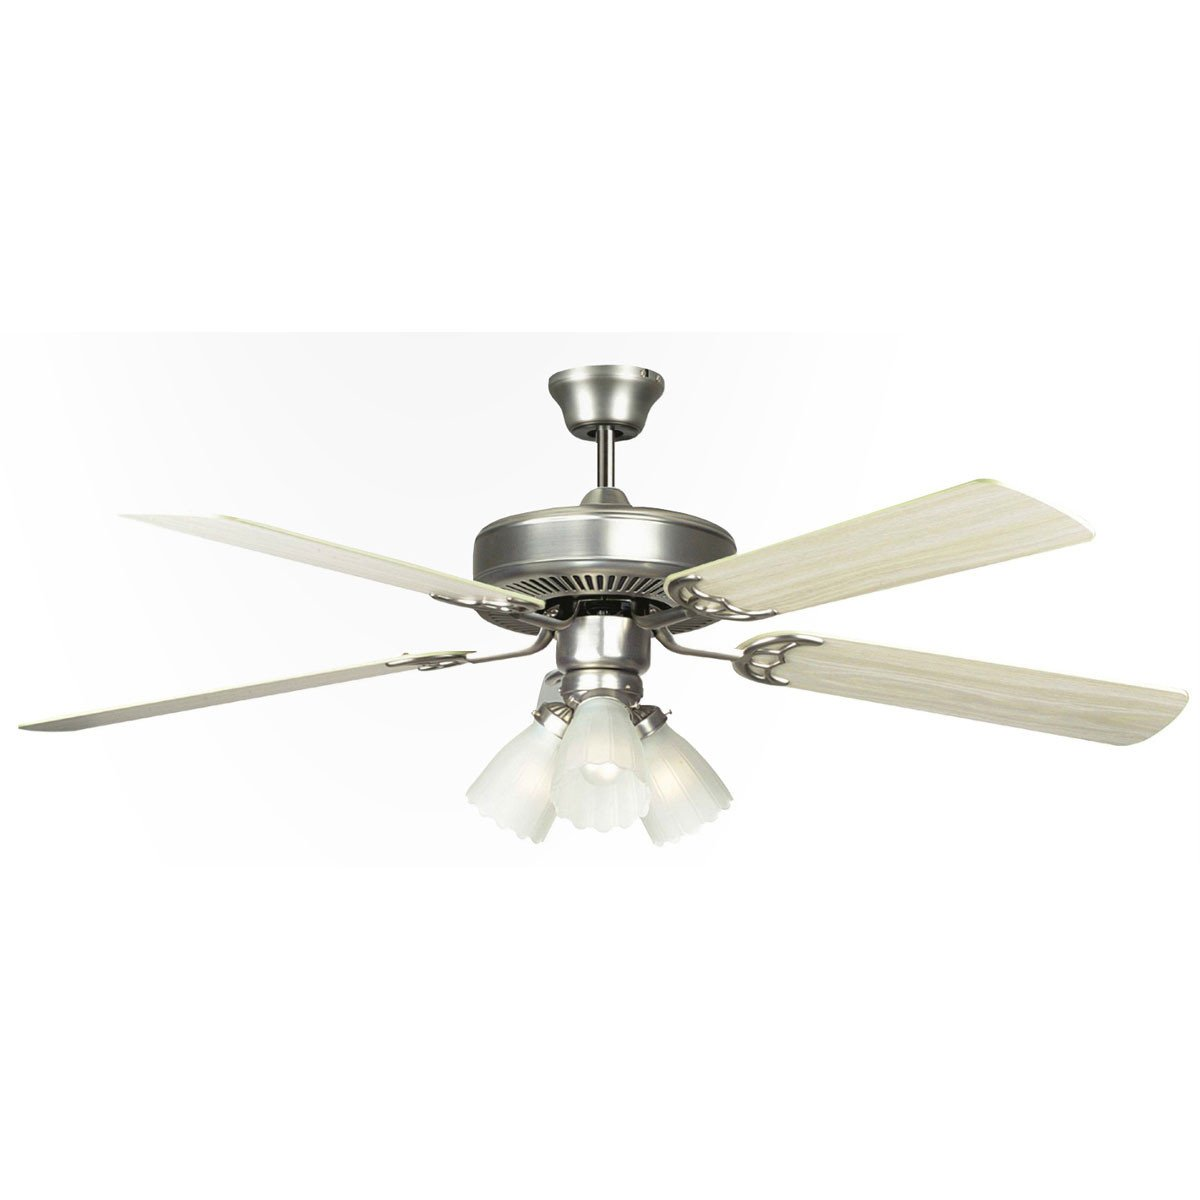 "Modern Ceiling Fans With Lights: Concord Fans 52"" Home Air Satin Nickel Modern Ceiling Fan"